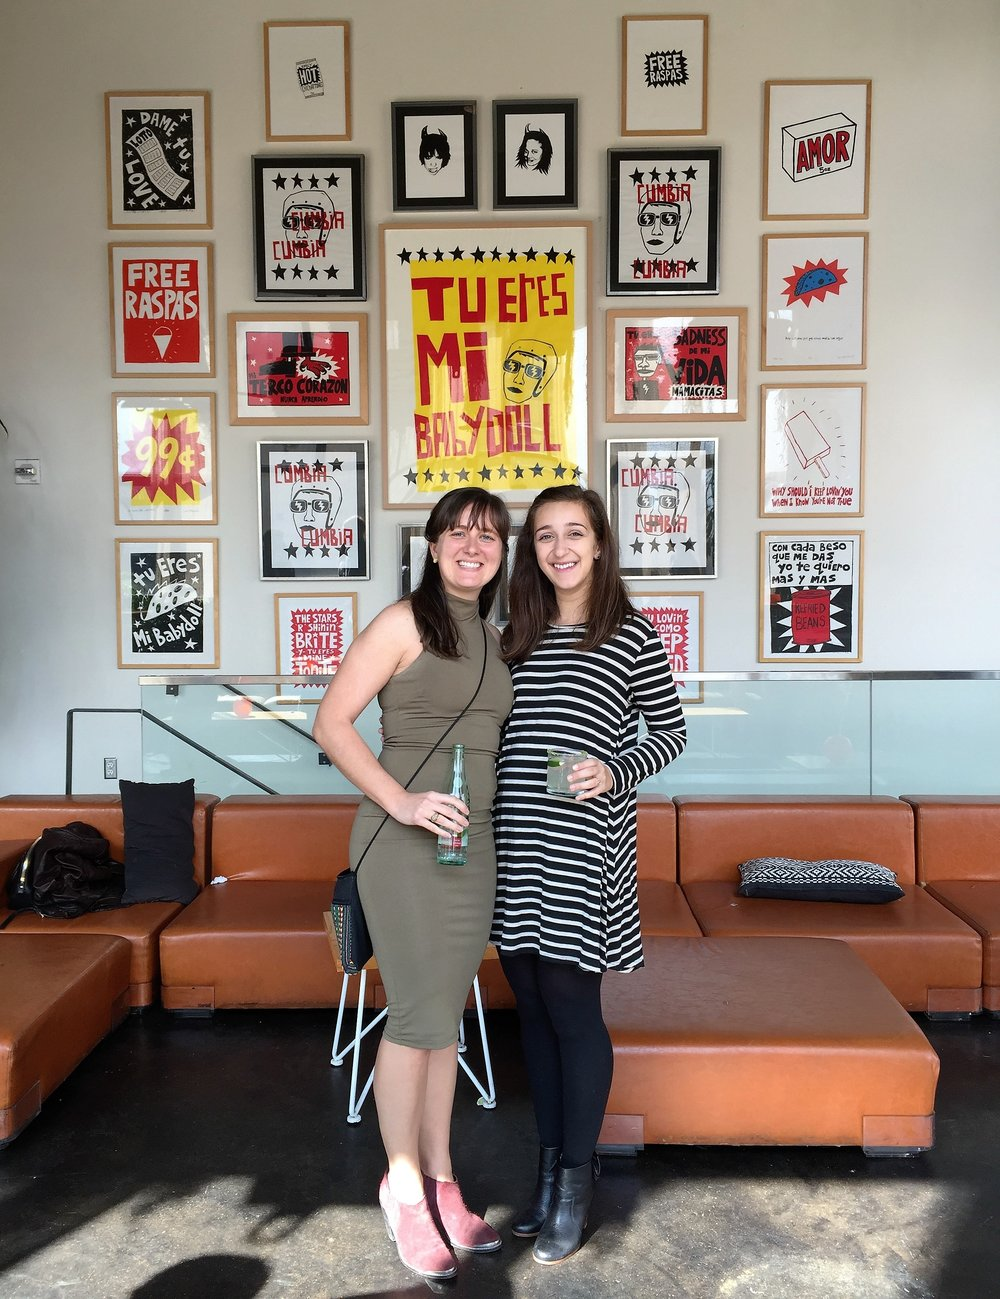 Our own Allison F. Stoos with colleague Anna Katsios at a celebration brunch in honor of both women achieving licensure as Architects this winter.